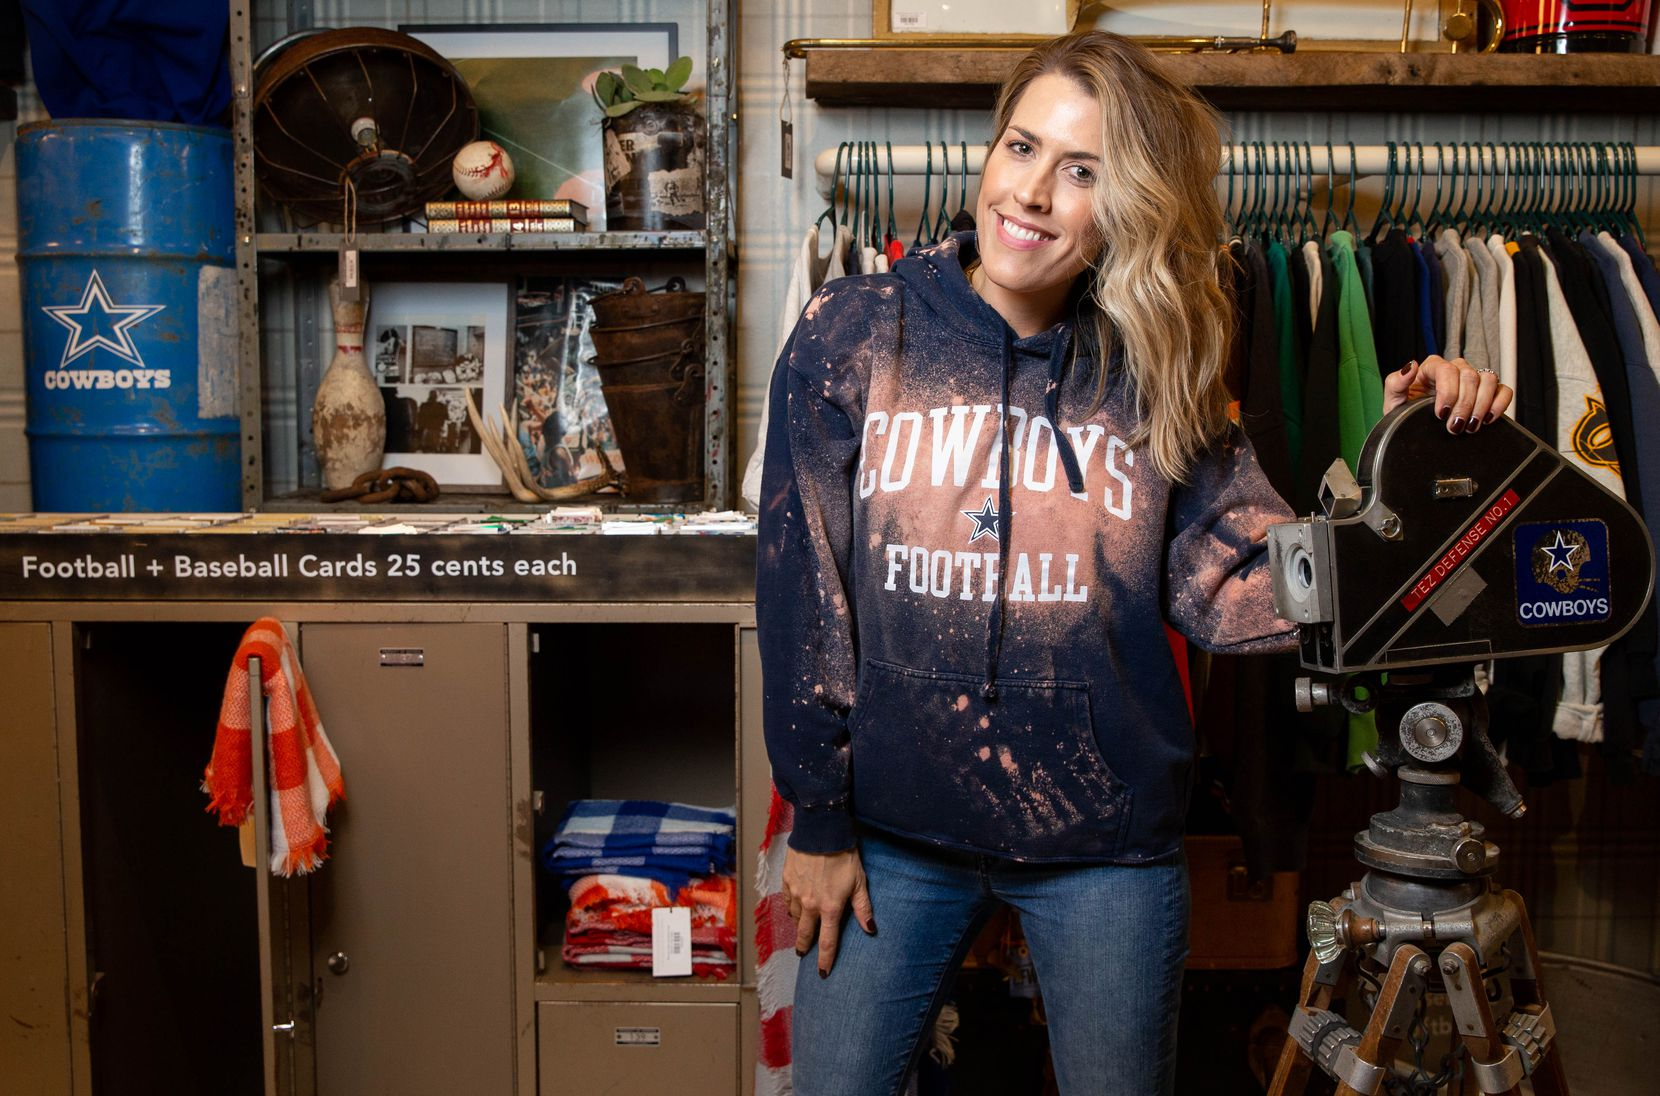 Game Day Style founder Brittany Cobb is wearing a reimagined vintage Cowboys sweatshirt at her shop across from The Star in Frisco.